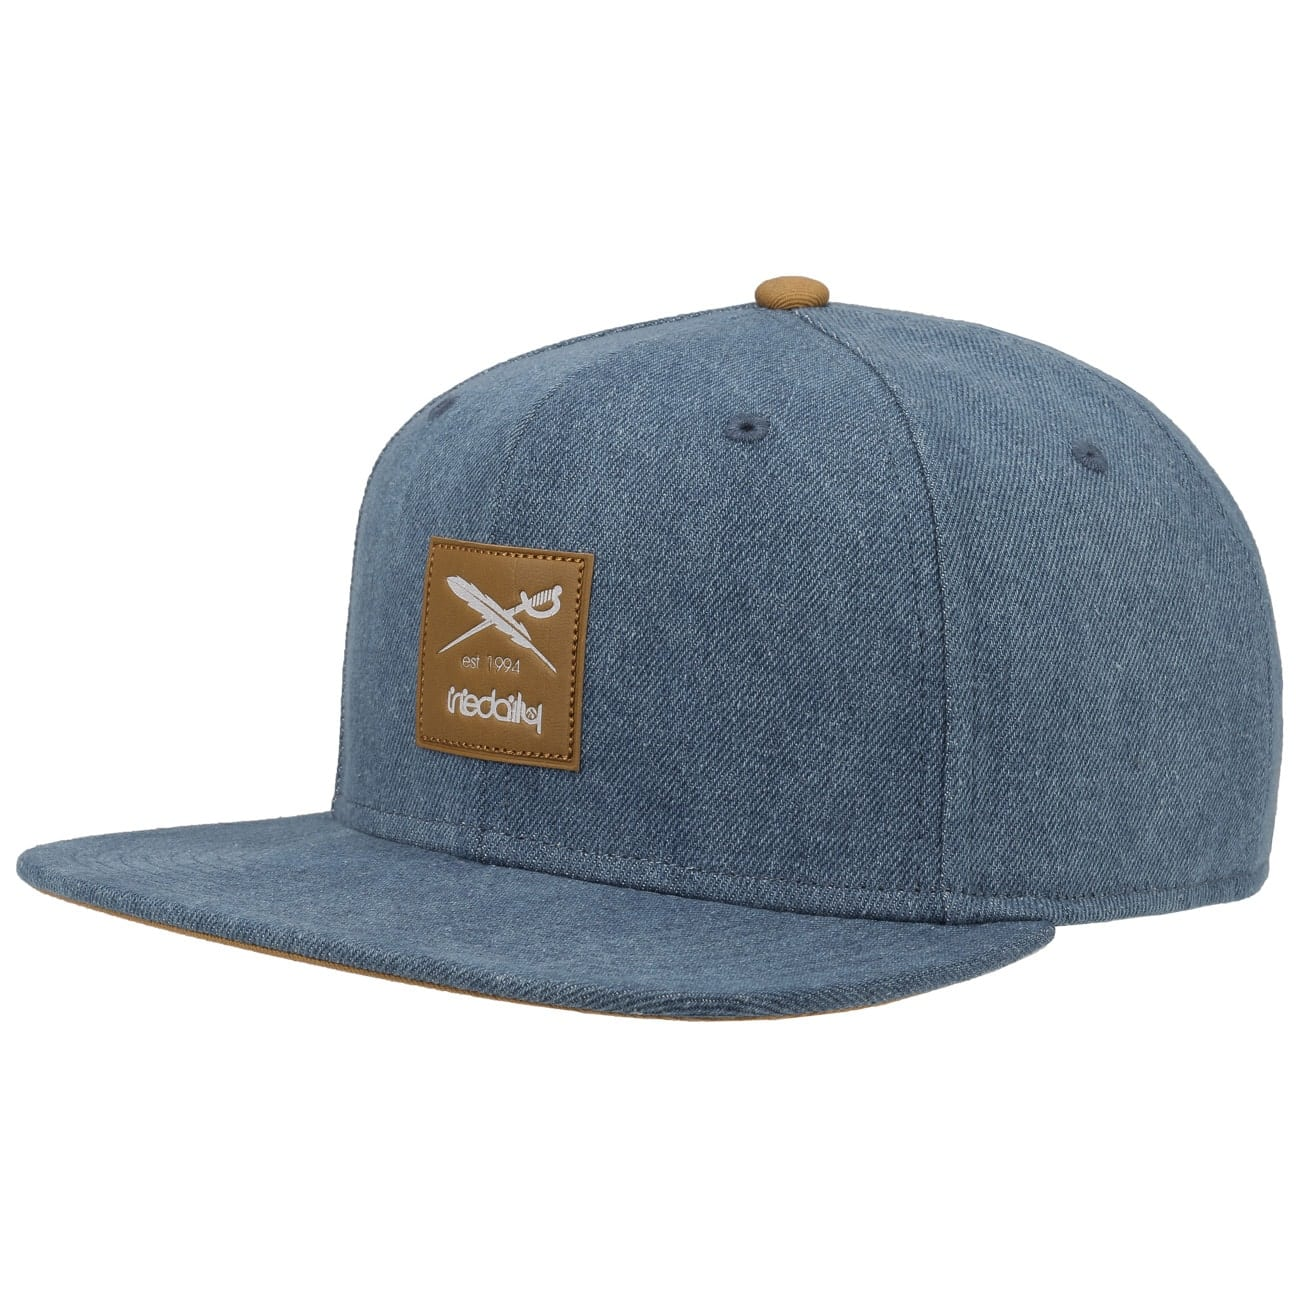 exclusive-flag-snapback-cap-by-iriedaily-basecap